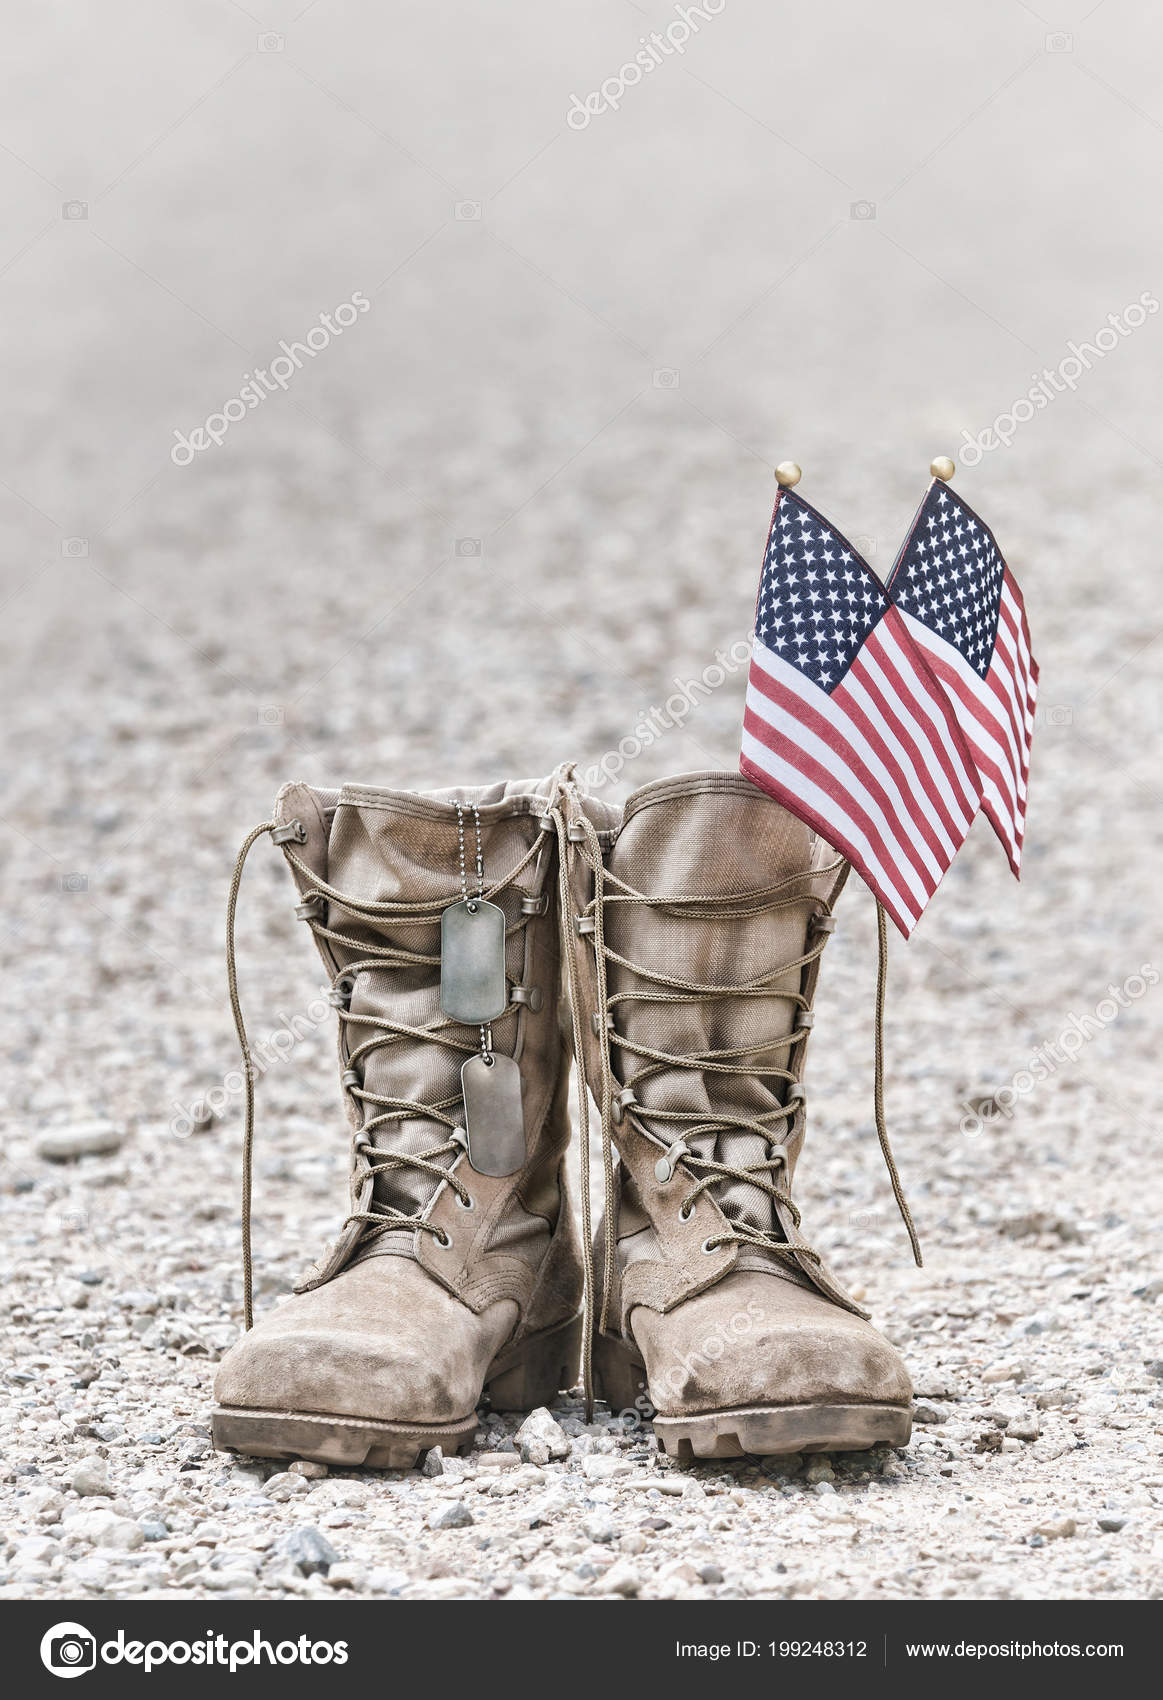 798738bf2ec0 Old military combat boots with dog tags and two small American flags. Rocky  gravel background with copy space. Memorial Day or Veterans day concept.